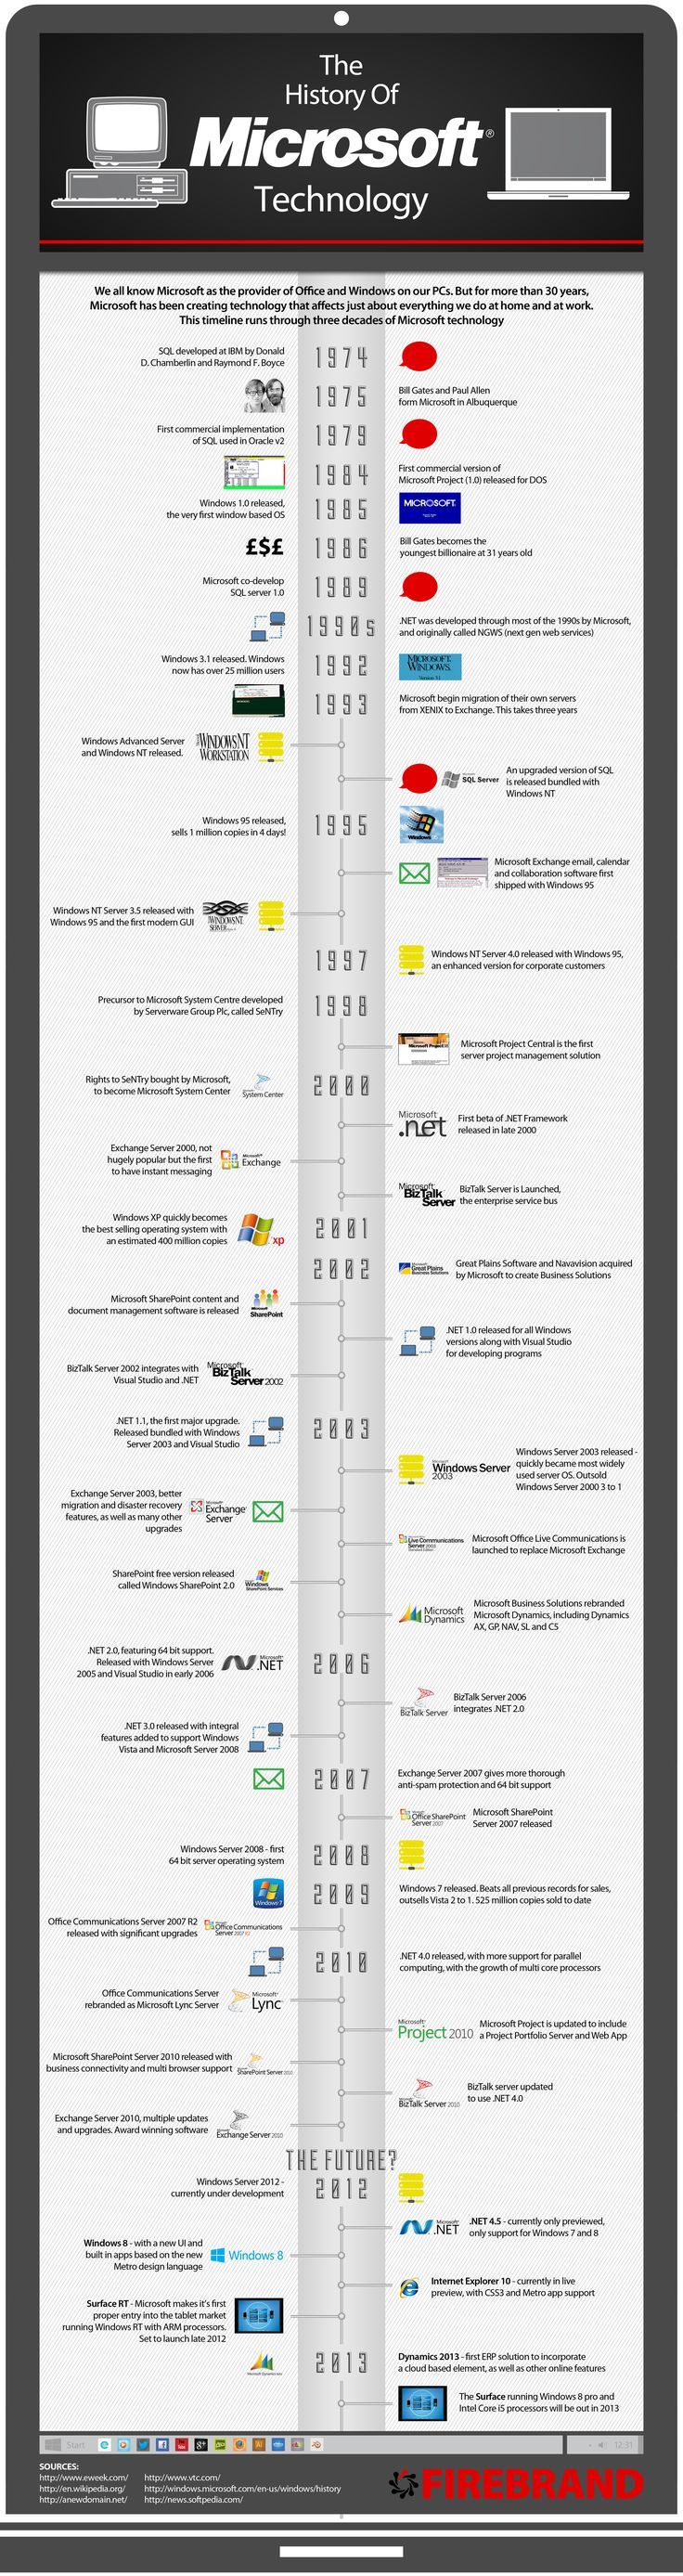 An Infographic looking at the History of Microsoft Technology over the last 30 years covering all major launches. This includes, Windows Server, SQL S